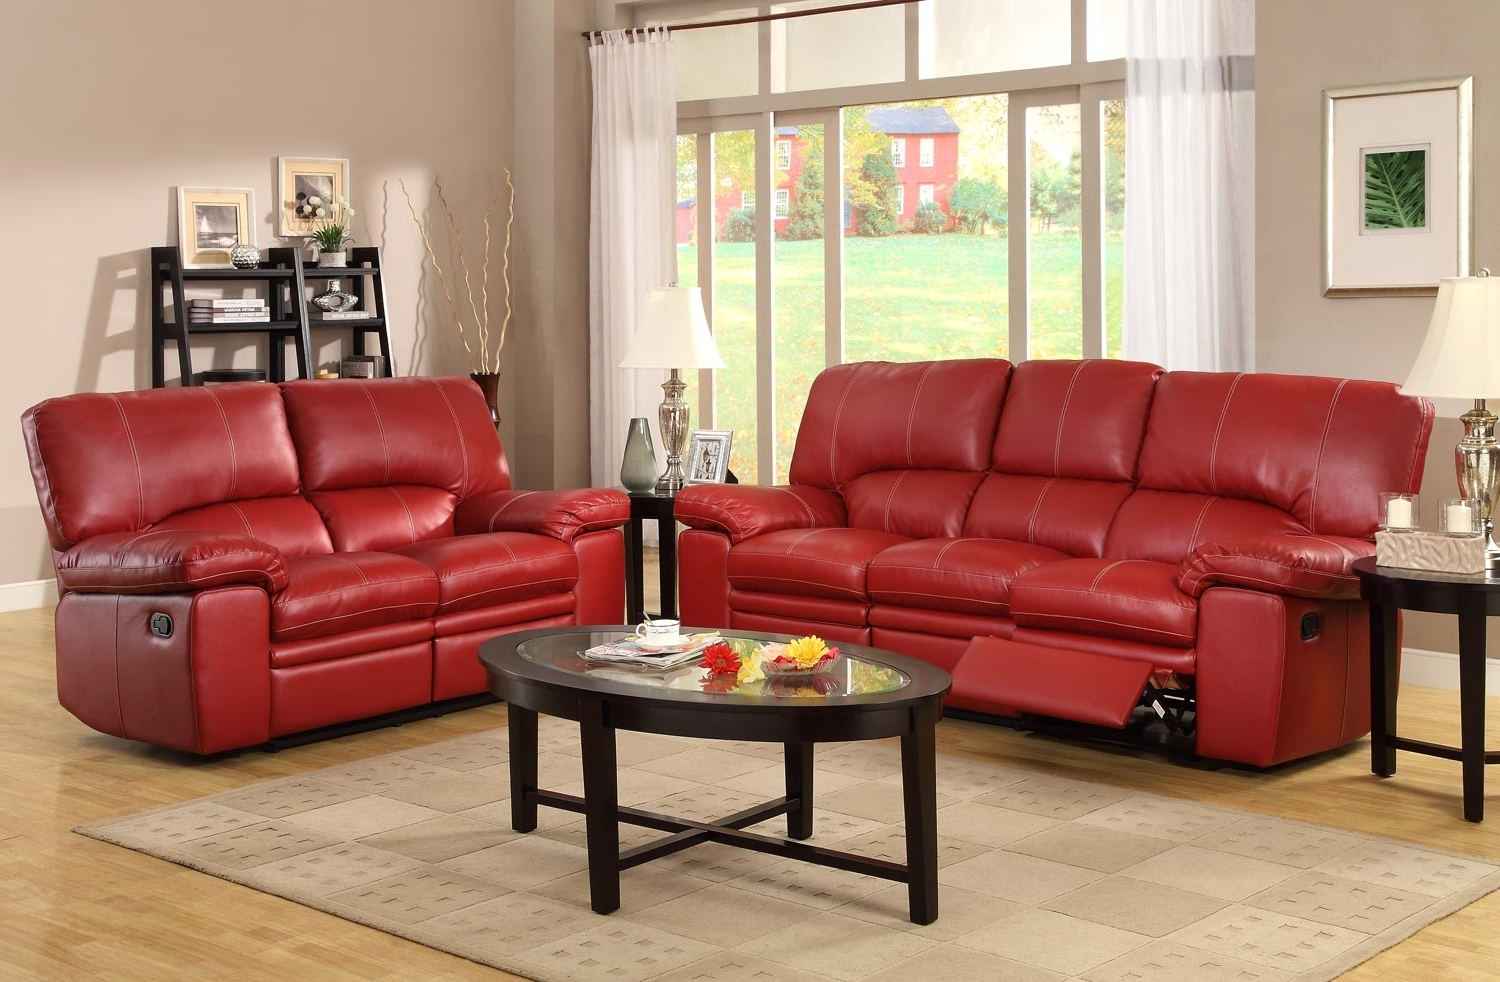 Red Leather Couches And Loveseats Within Best And Newest Simple Red Leather Tufted Backrest Loveseat With Shelter Armrest (View 13 of 15)